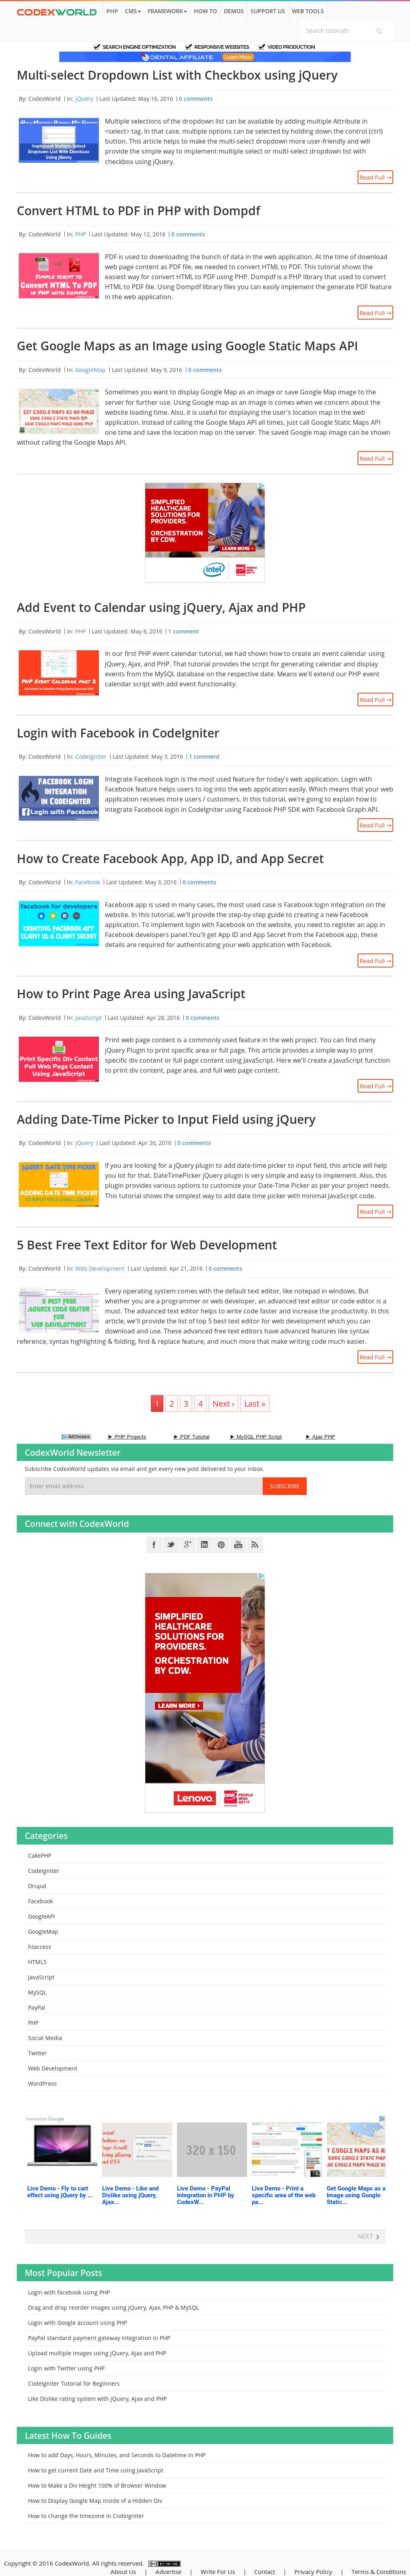 Owler Reports - Codexworld Blog Bootstrap Modal Popup Form Submit